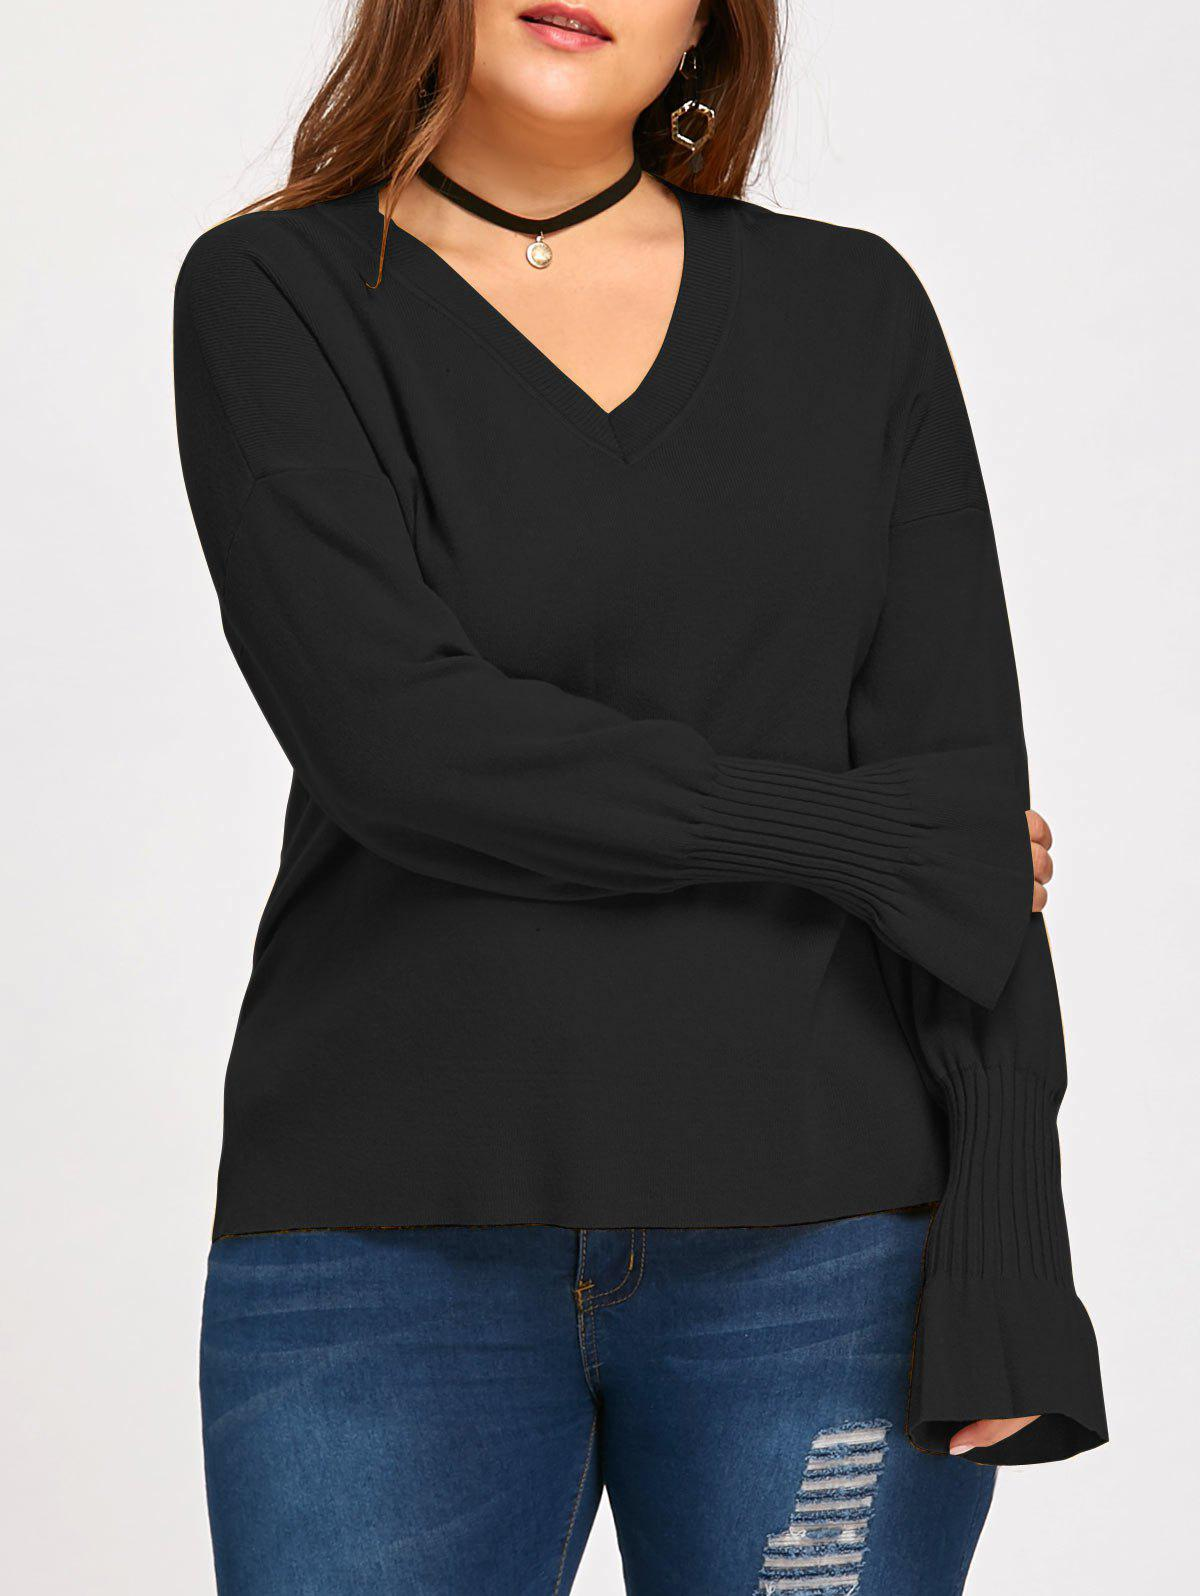 Flounce Lantern Sleeve Plus Size V Neck Sweater - BLACK 2XL